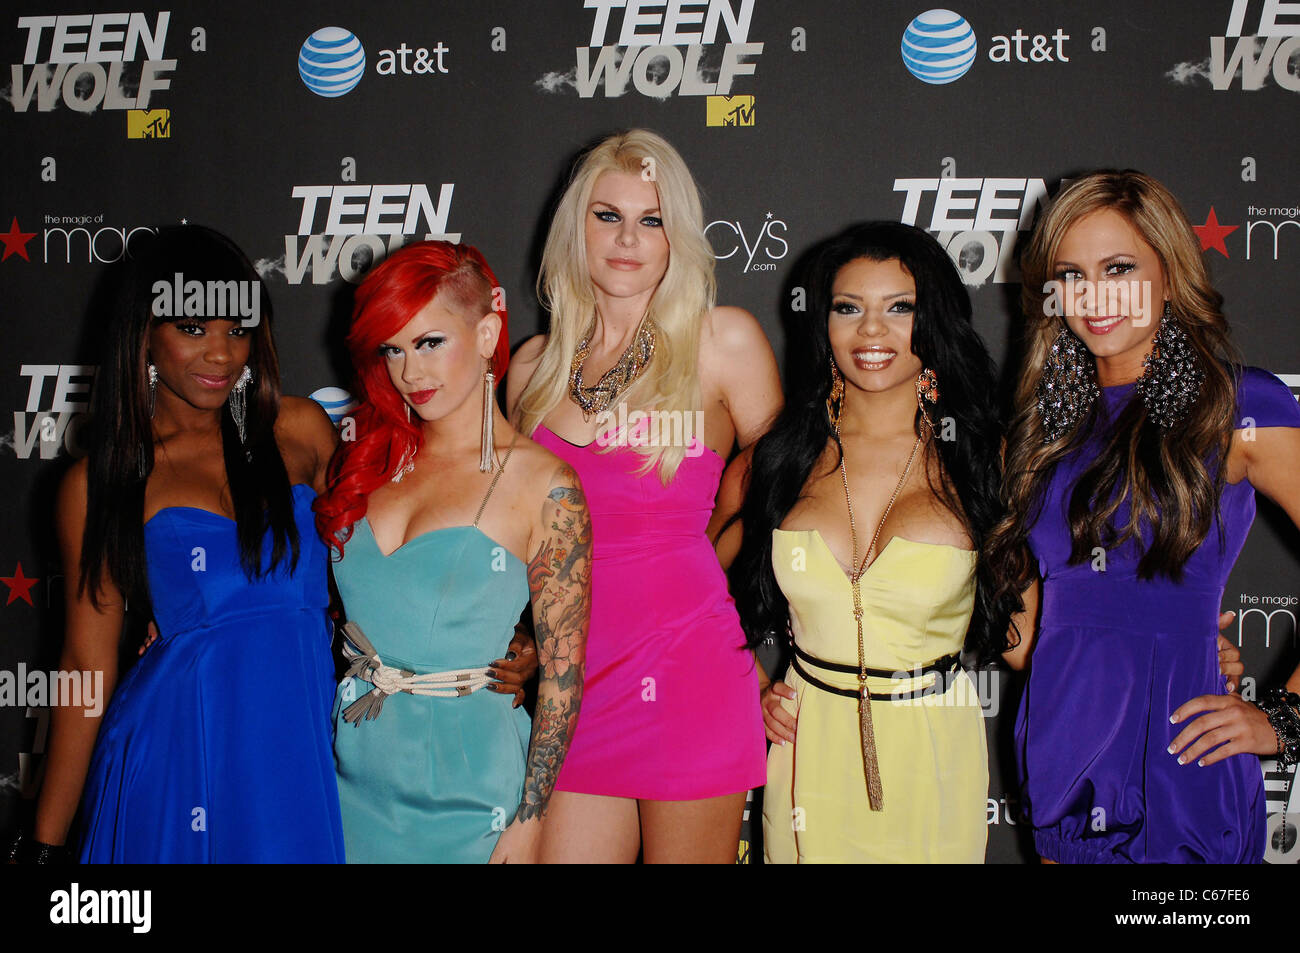 Electric Barbarellas at arrivals for TEEN WOLF Premiere Party, The Roosevelt Hotel, Los Angeles, CA May 25, 2011. - Stock Image